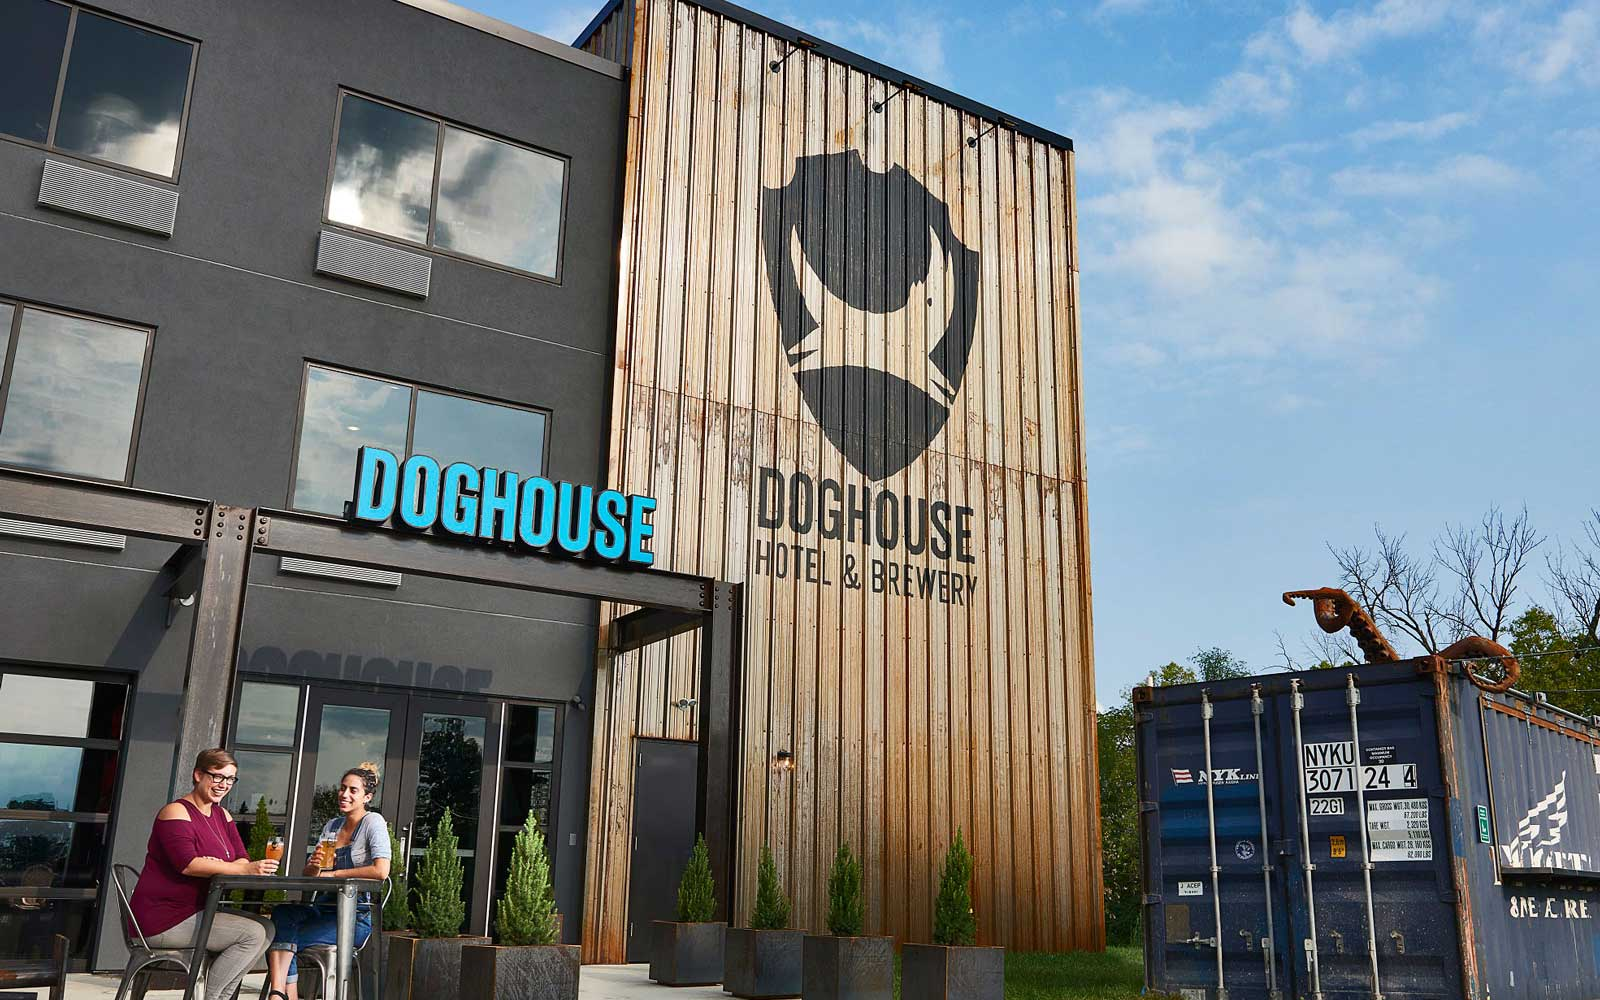 The DogHouse exterior